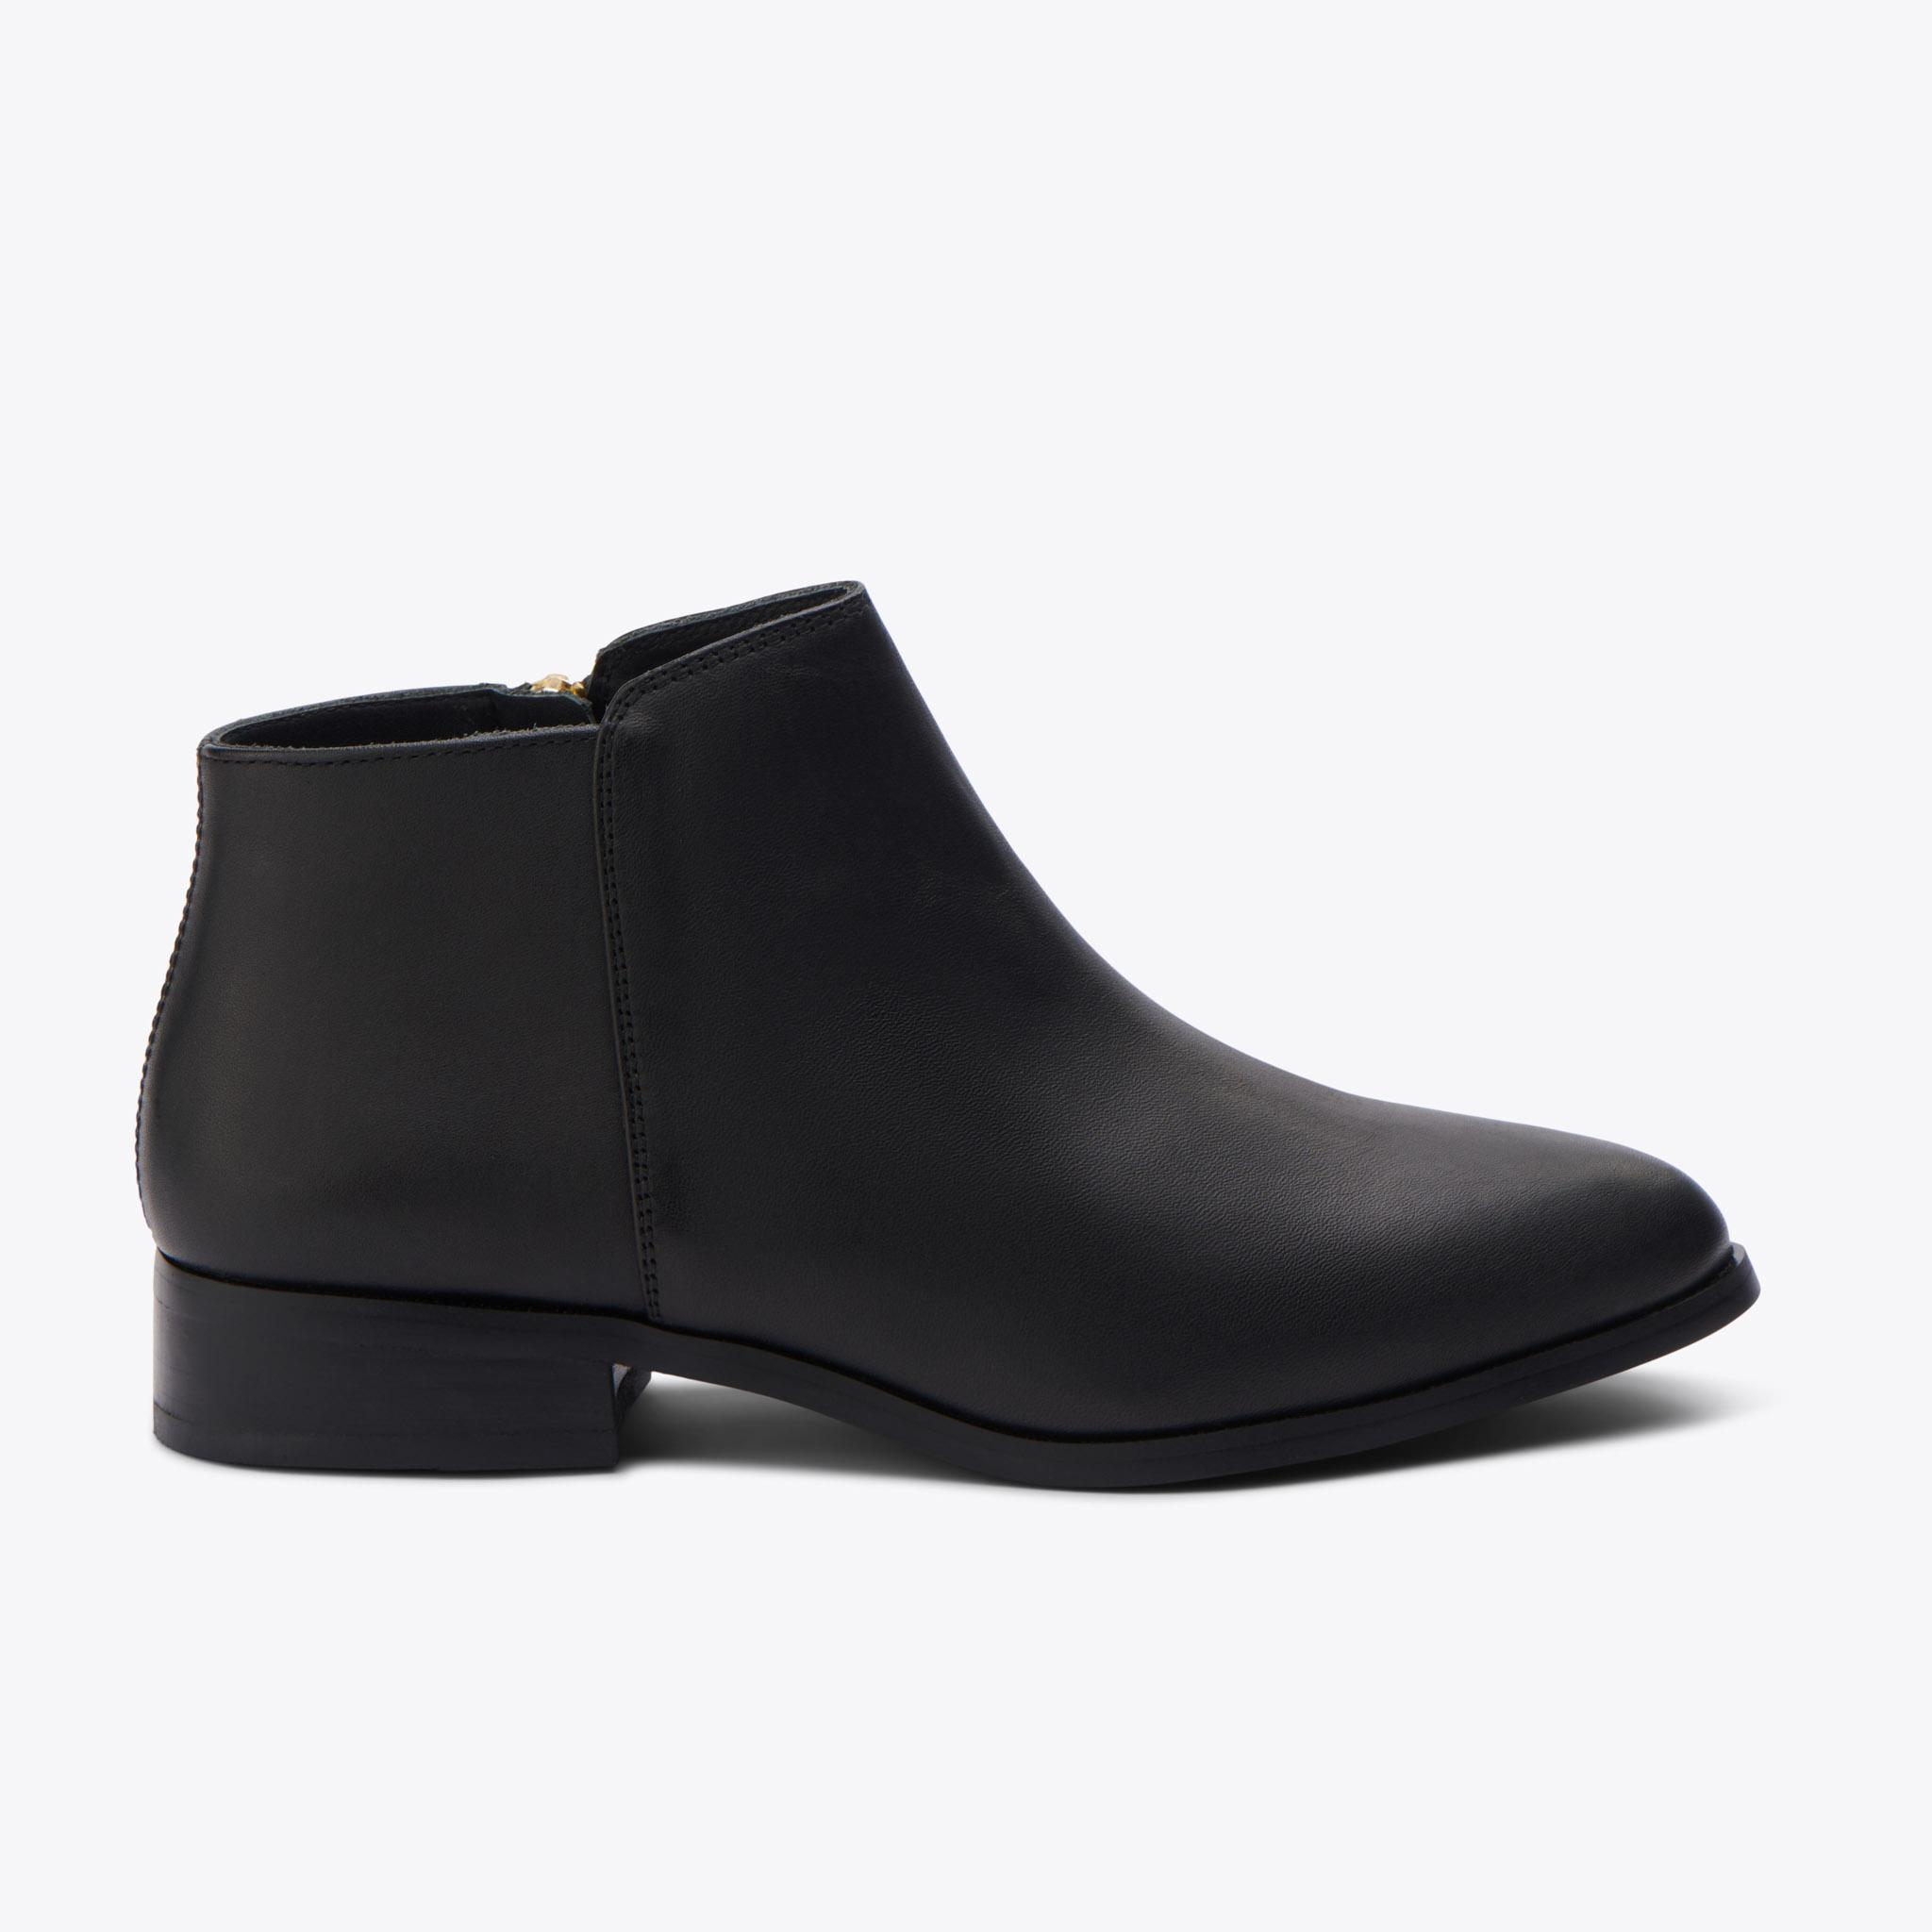 Nisolo - Lana Ankle Boot Black/Black